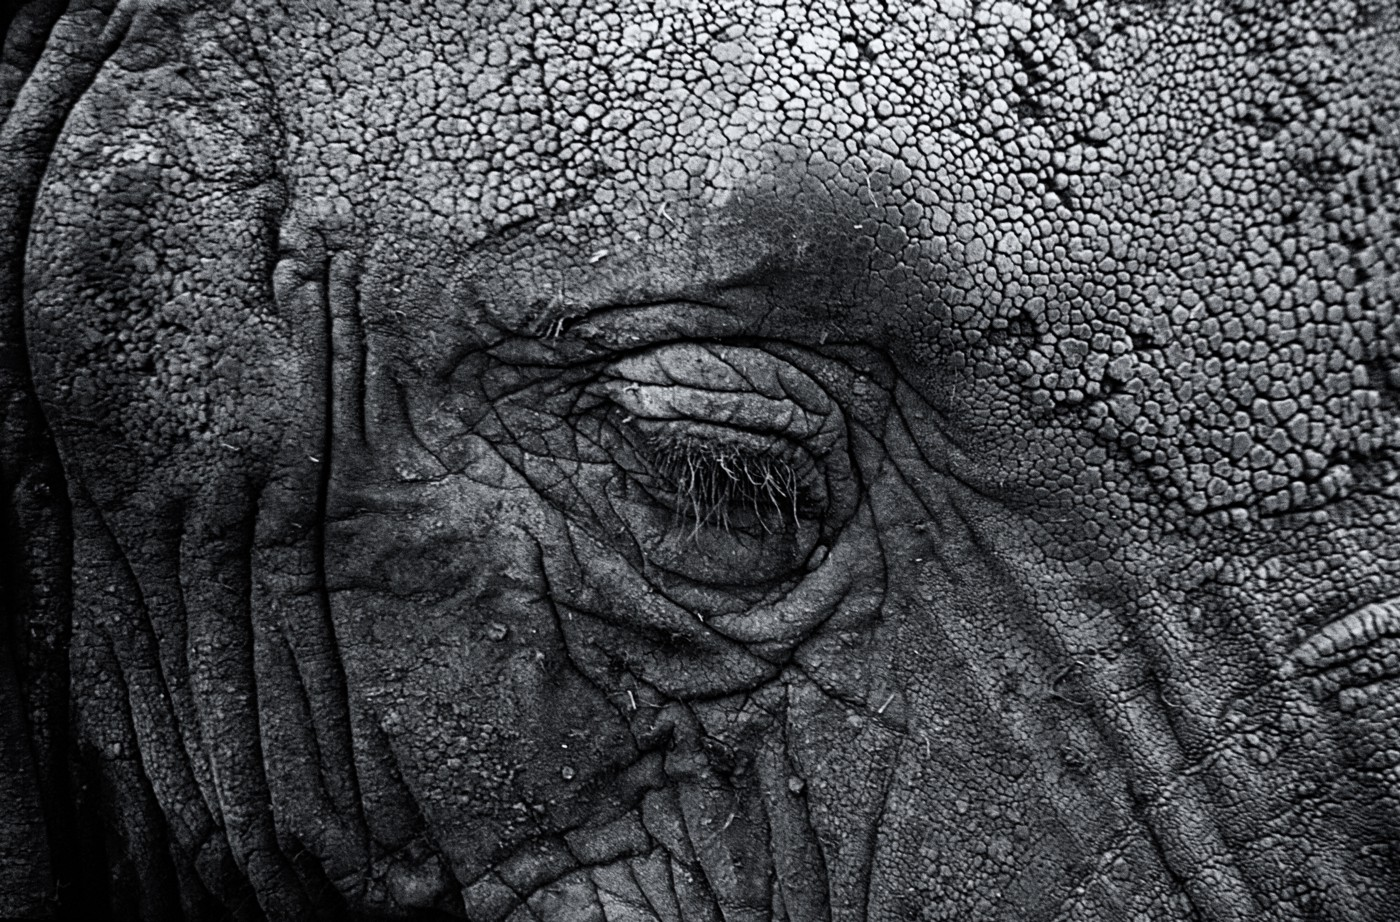 Black and White Elephant Face. Is This It? By Rena Willis